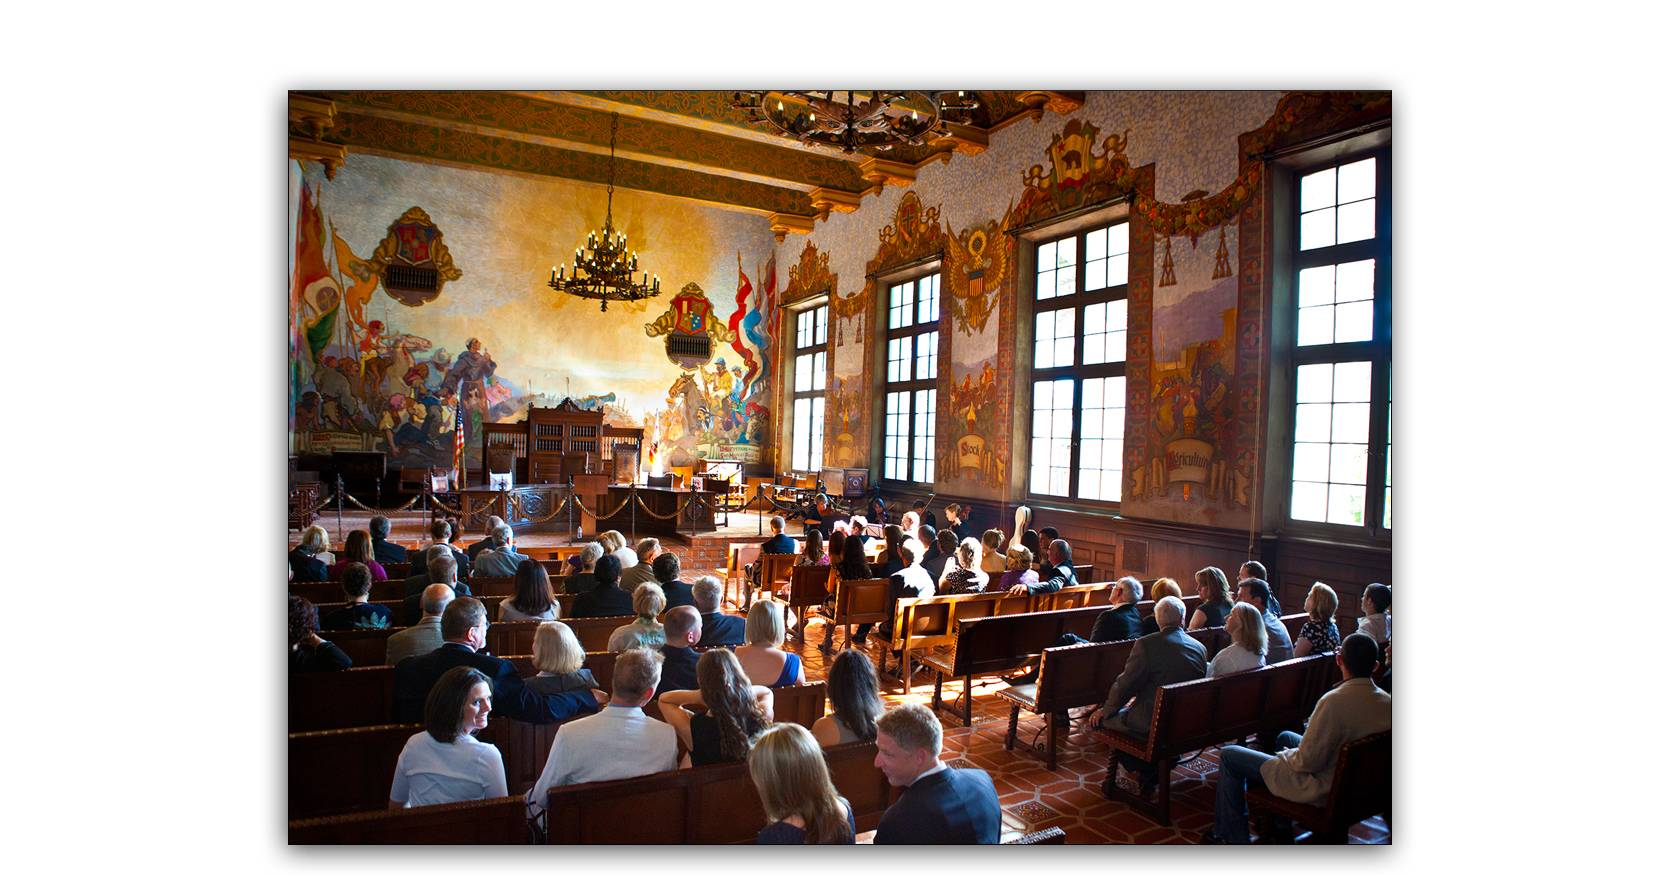 Santa barbara courthouse wedding mural room cabrillo for Mural room santa barbara courthouse